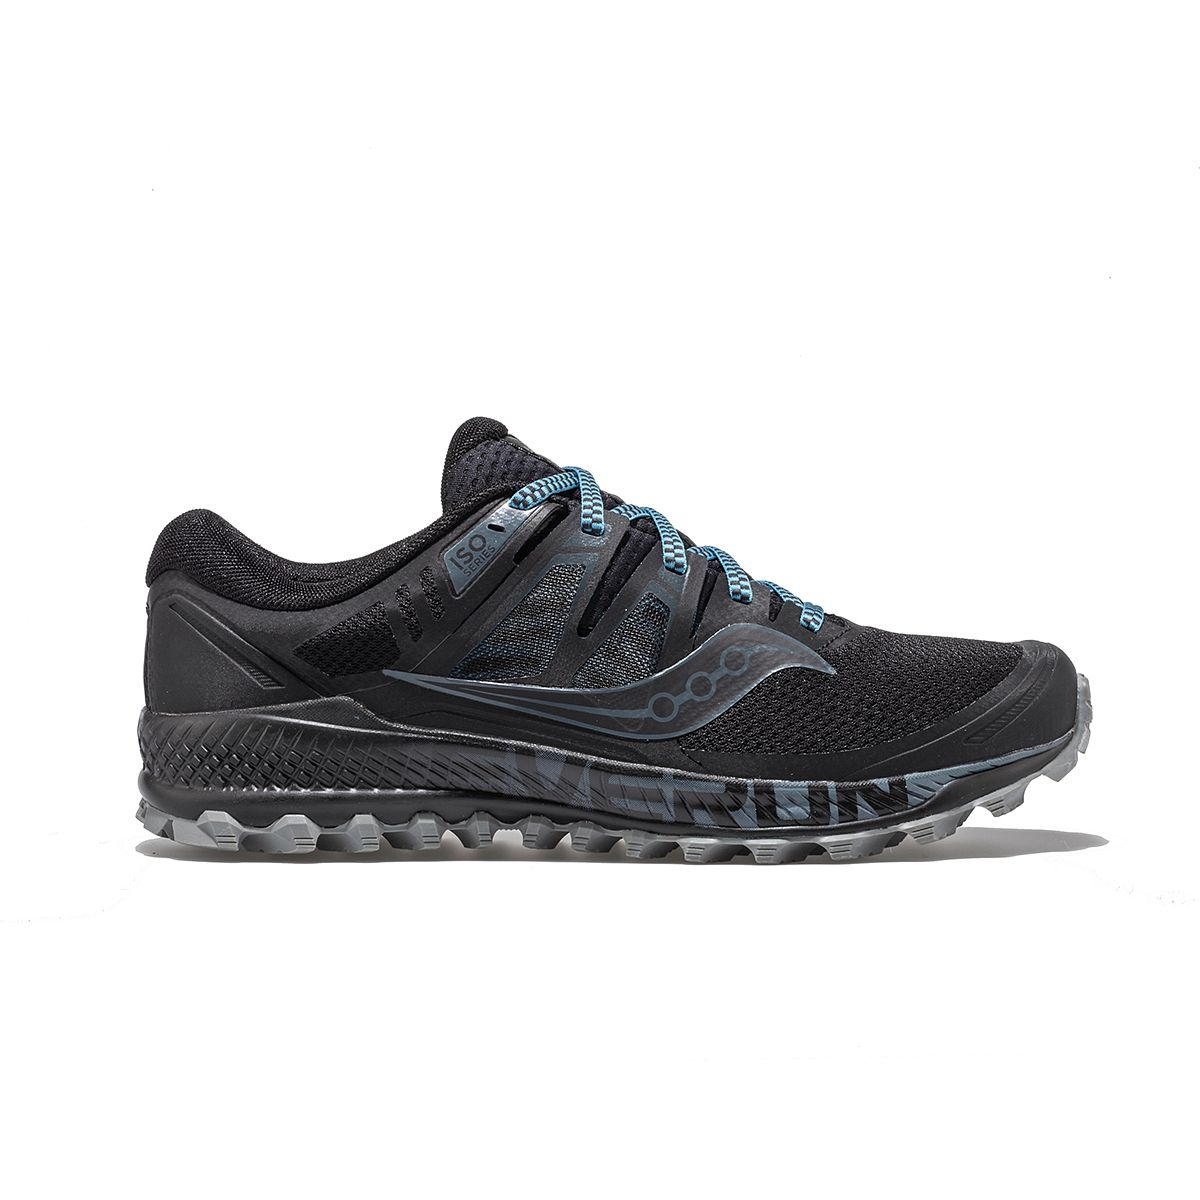 Saucony Peregrine 8 Men/'s Running Shoes Grey//Black//Green Size 10.5 M